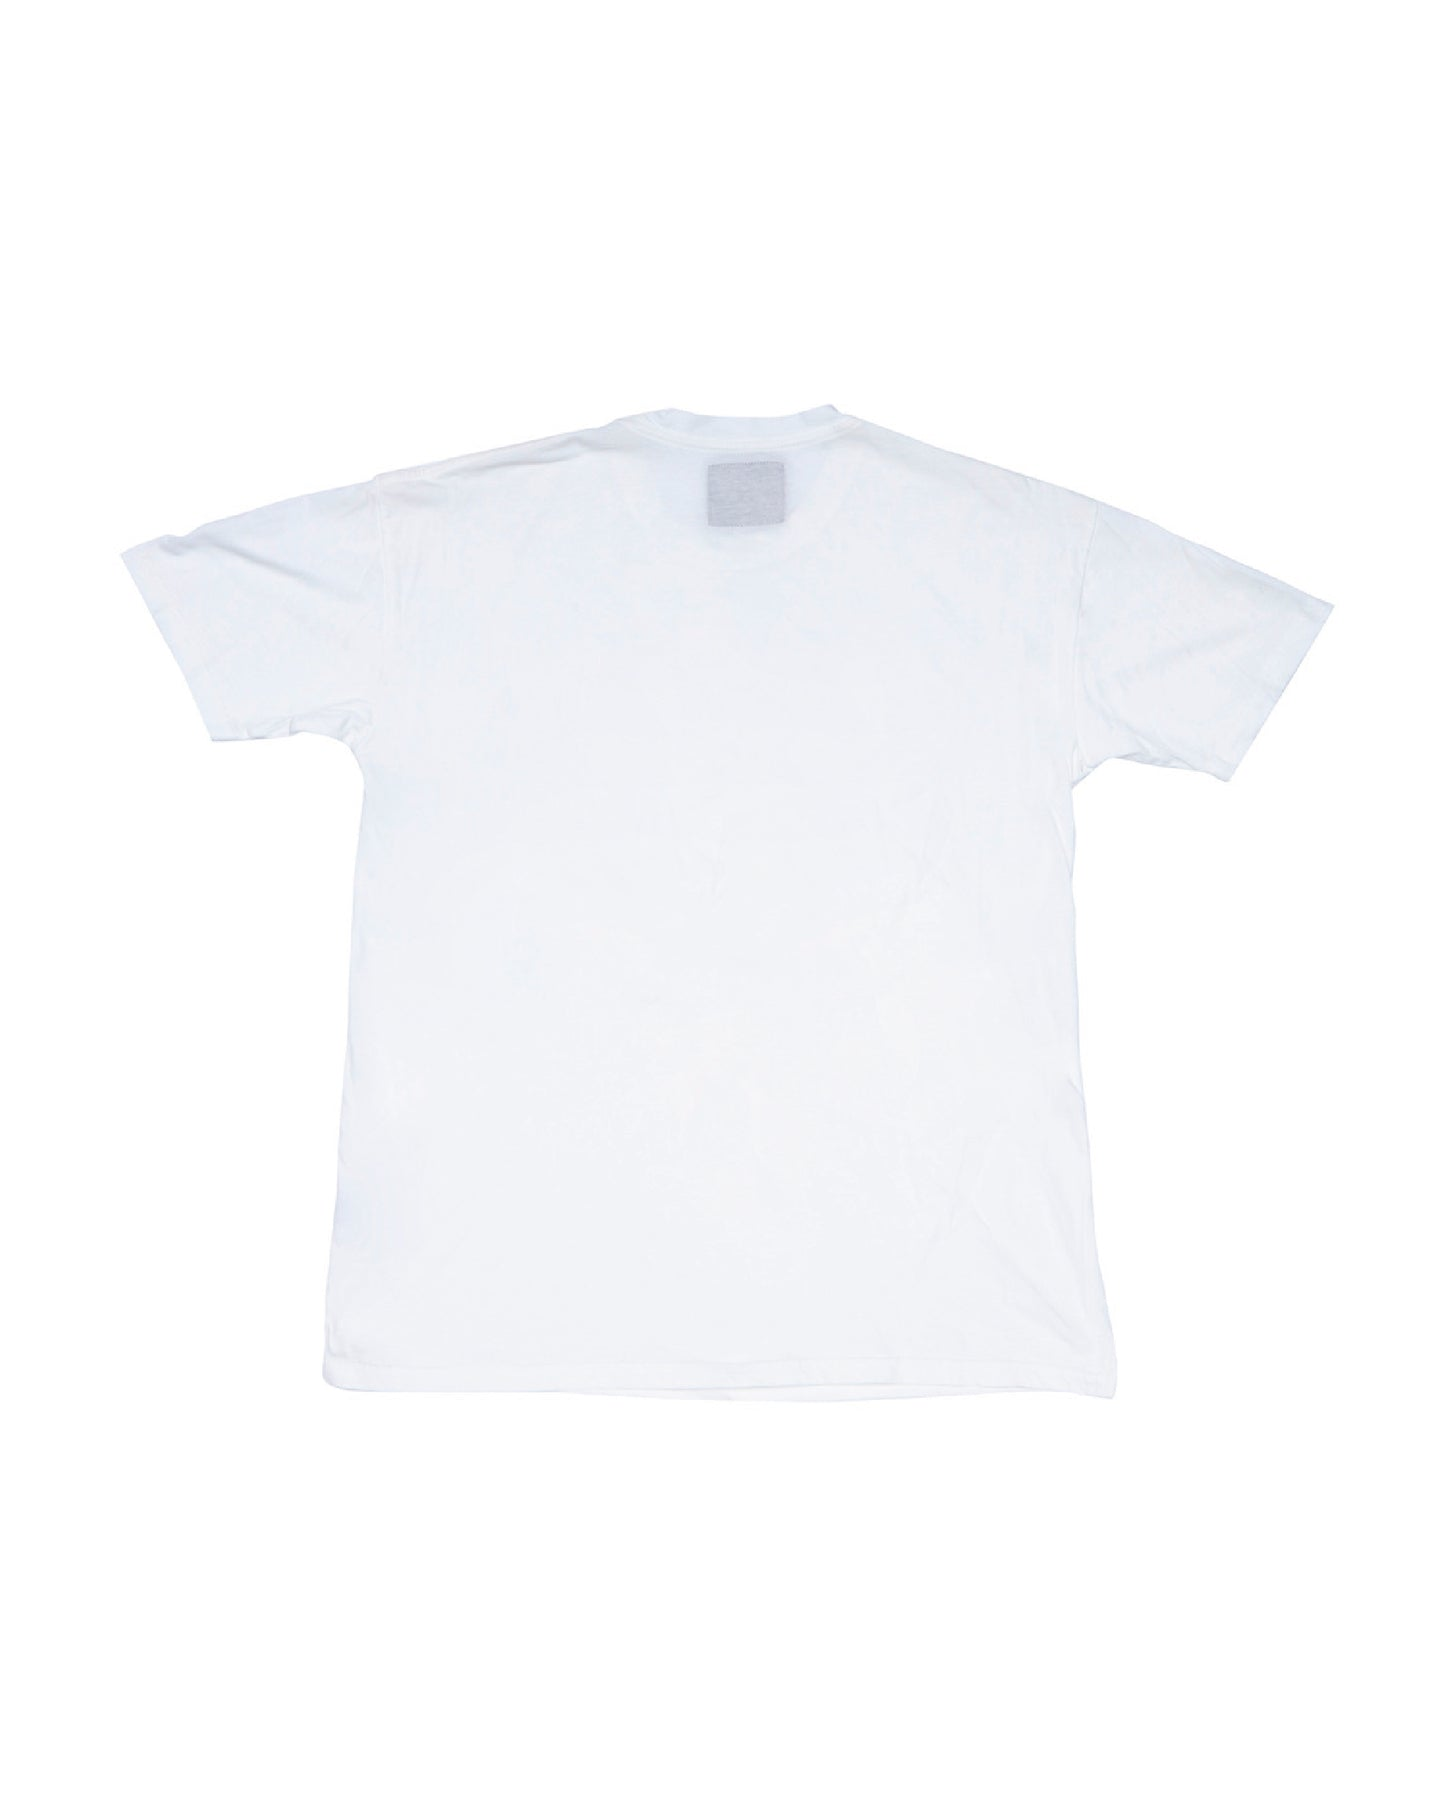 CHANELILAND T-SHIRT